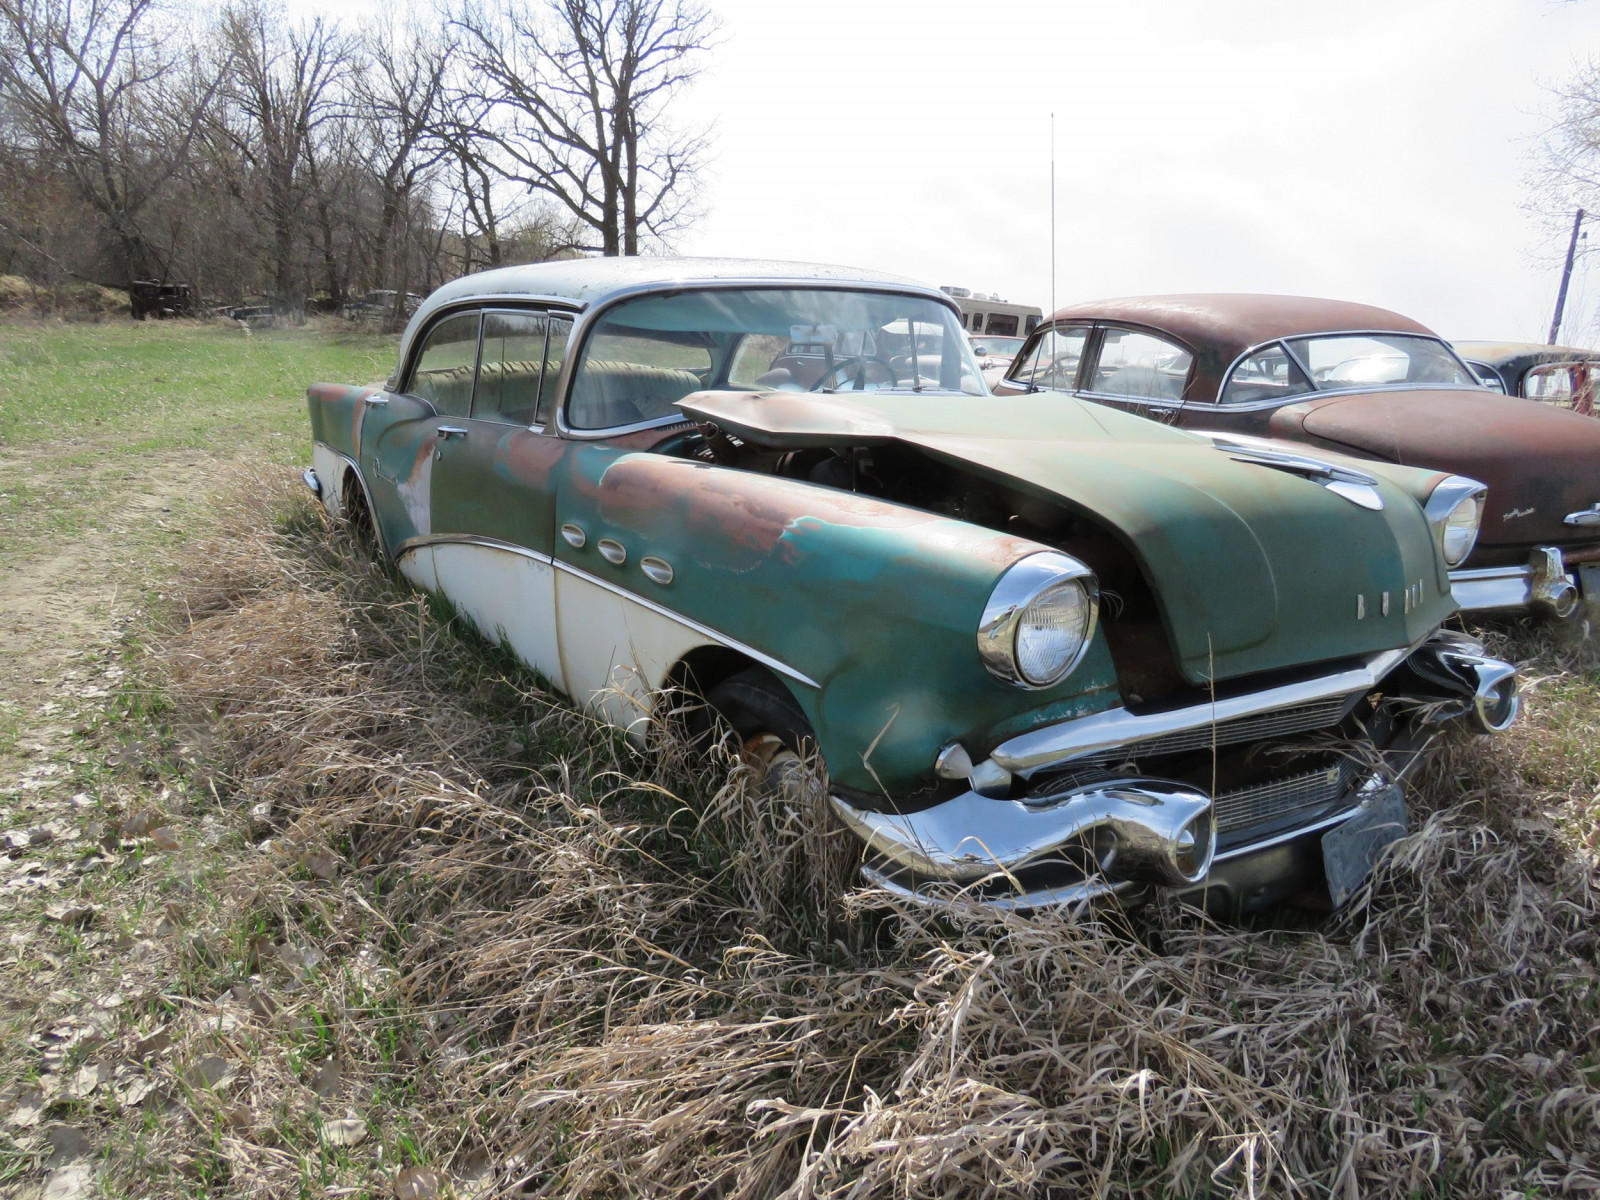 1956 Buick Special 4dr Hit 4C4046544 - Image 3